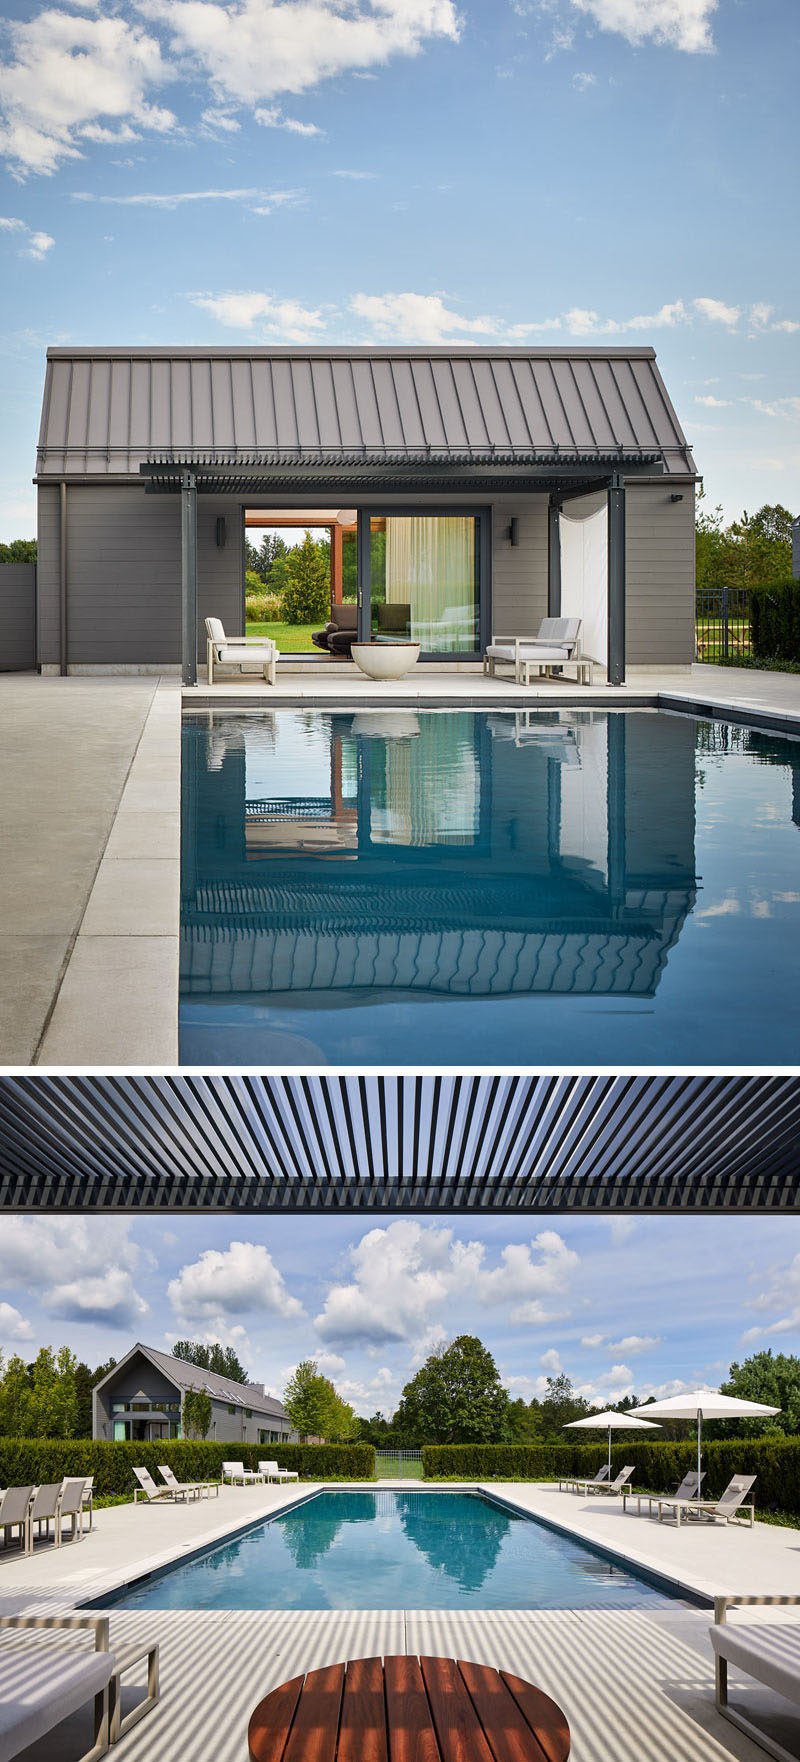 In this modern landscaped yard, there's apool, a hot tub and asheds that contain a sauna, pool equipment and mechanical functions. If needed in the future, the shed can be transformed into a one-bedroom guest cottage. #ModernSwimmingPool #PoolHouse